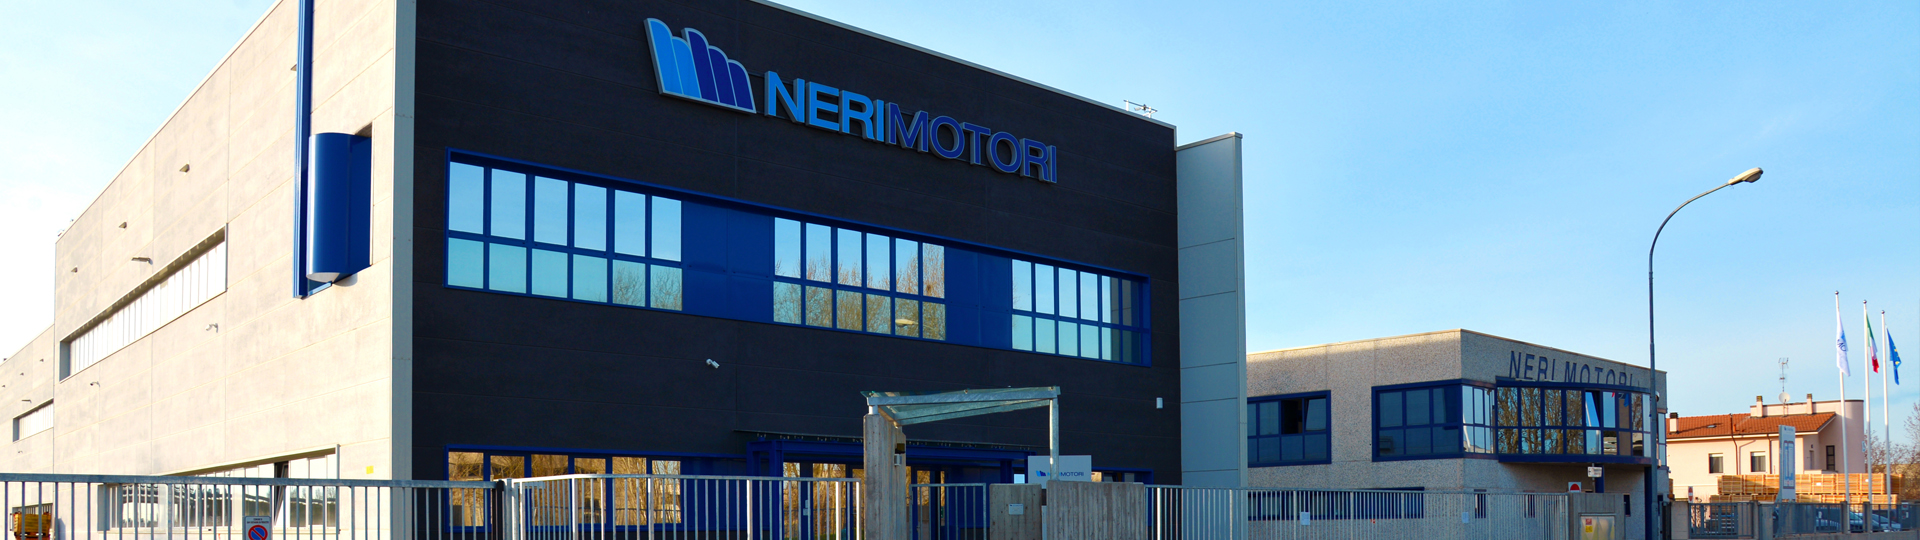 Three-phase induction motors - Neri Motori S.R.L.